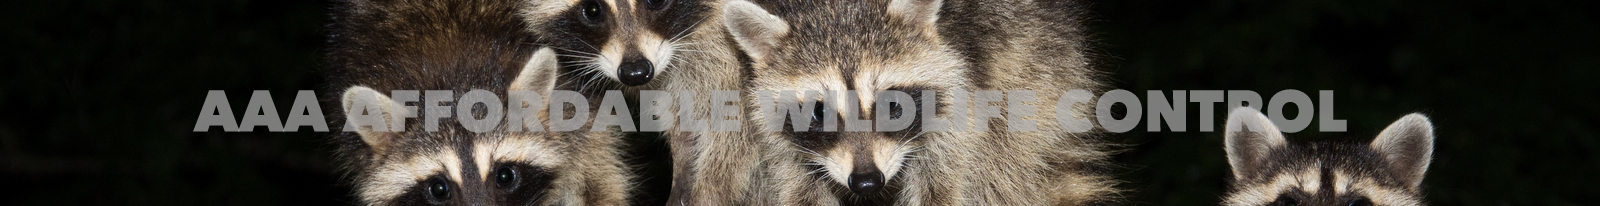 Raccoon Removal - Affordable Wildlife Control Toronto